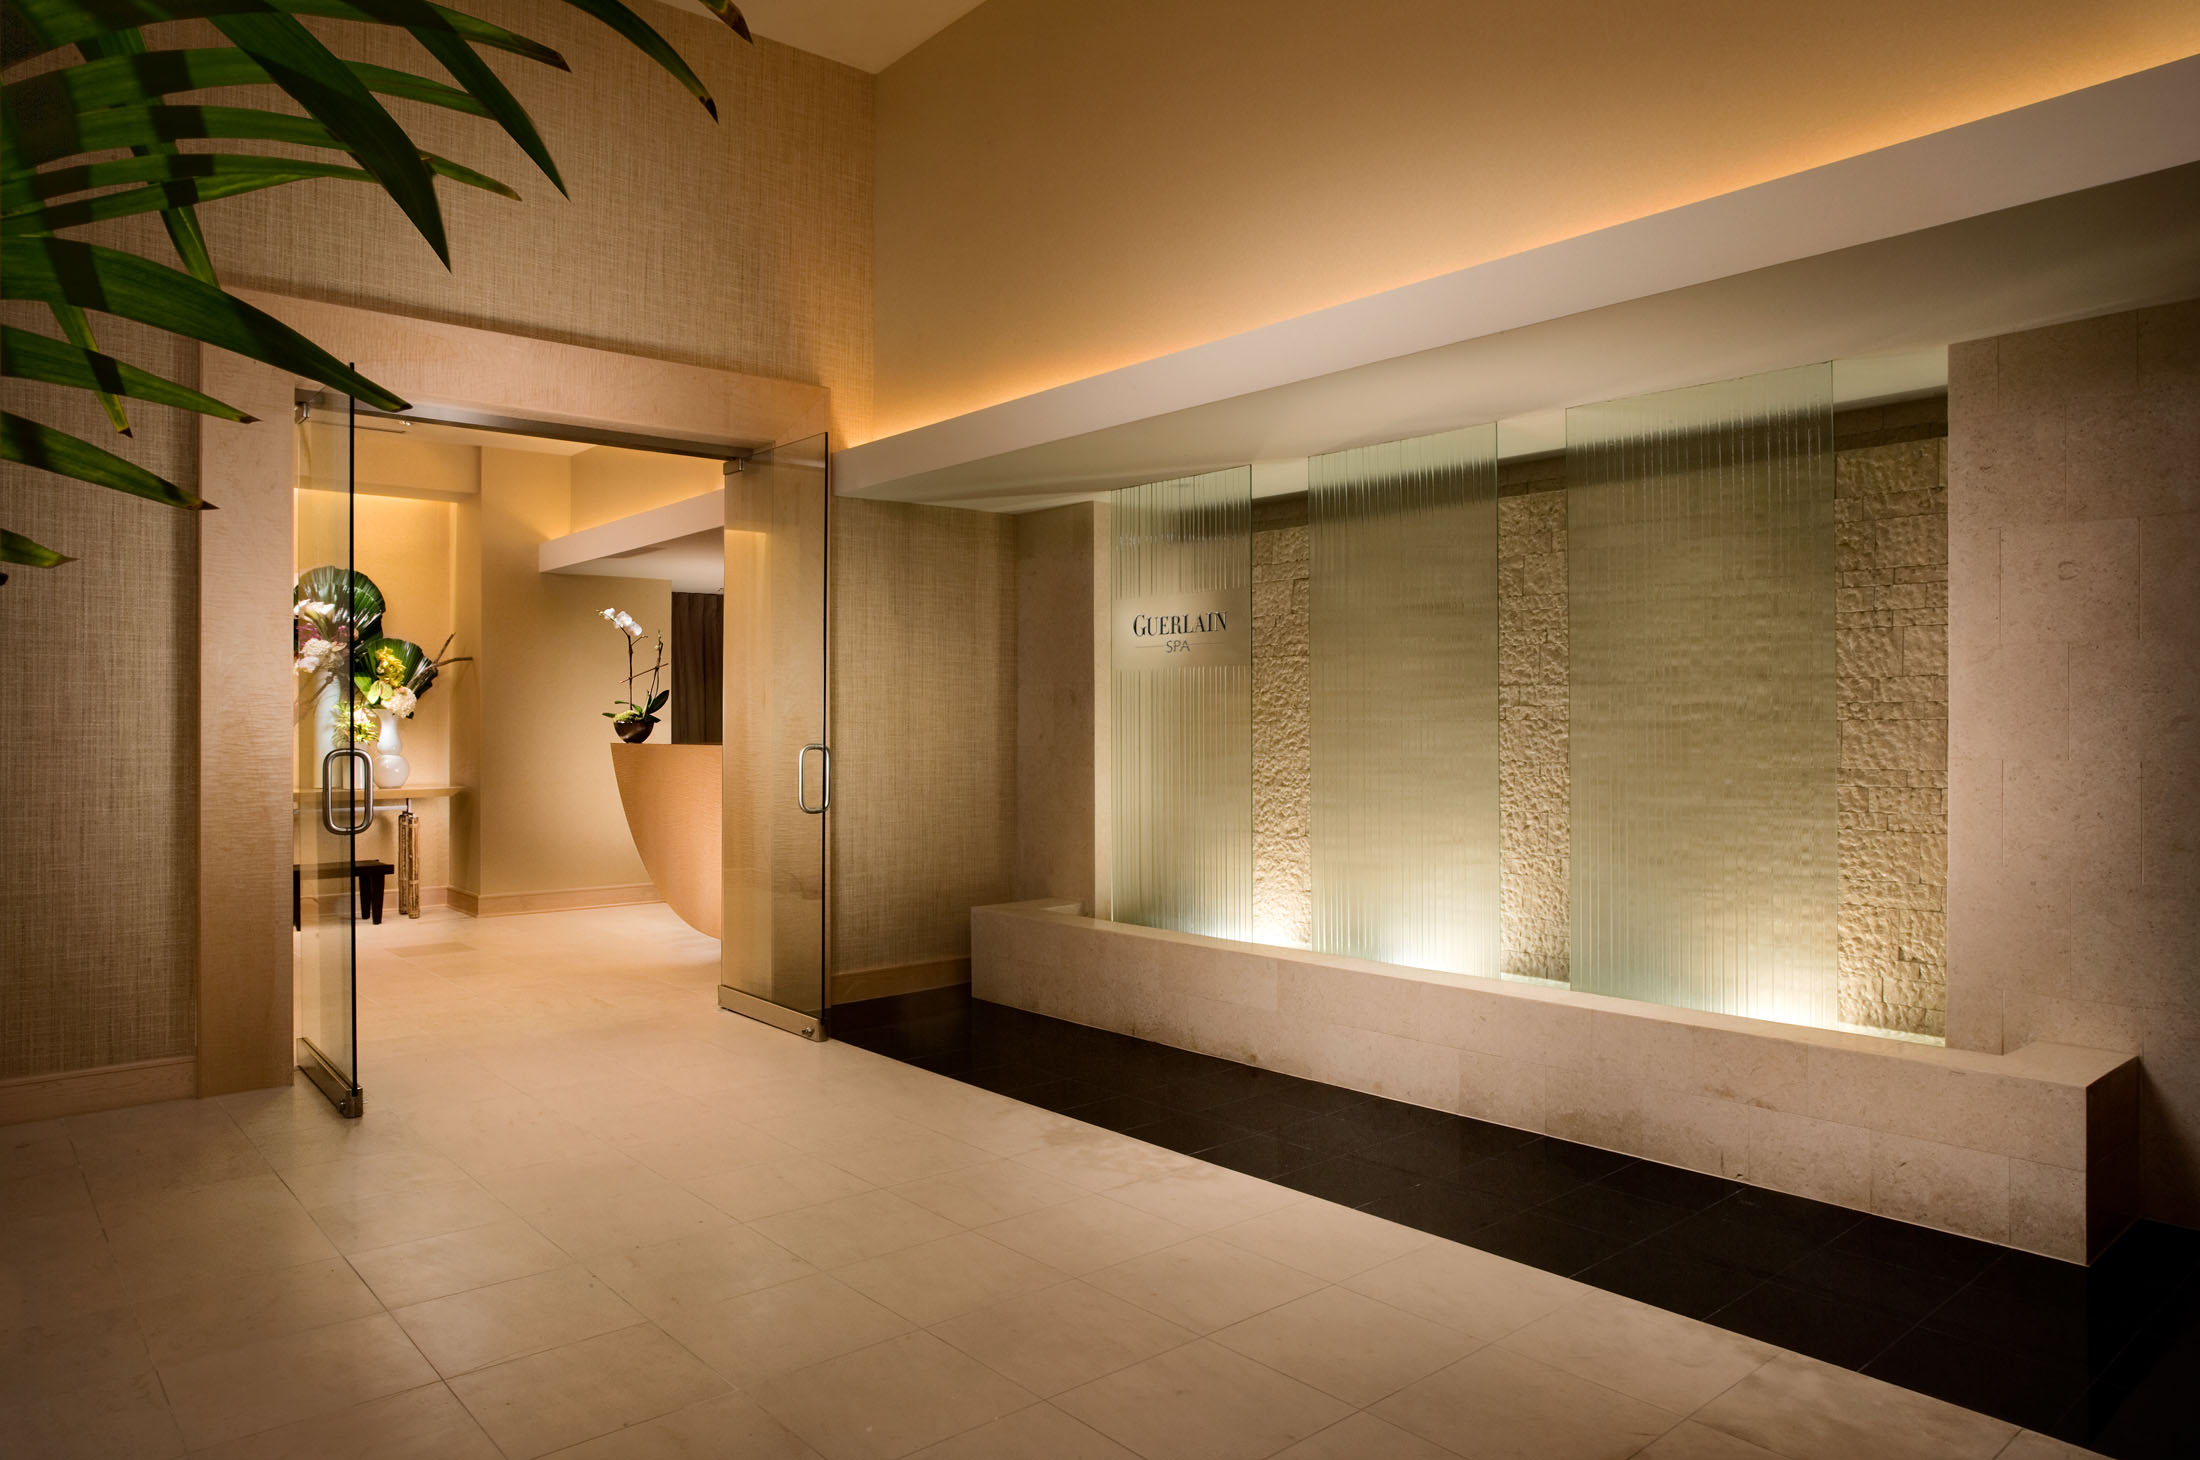 Guerlain Spa  Miami FL  C+TC Design Studio   View Full Project